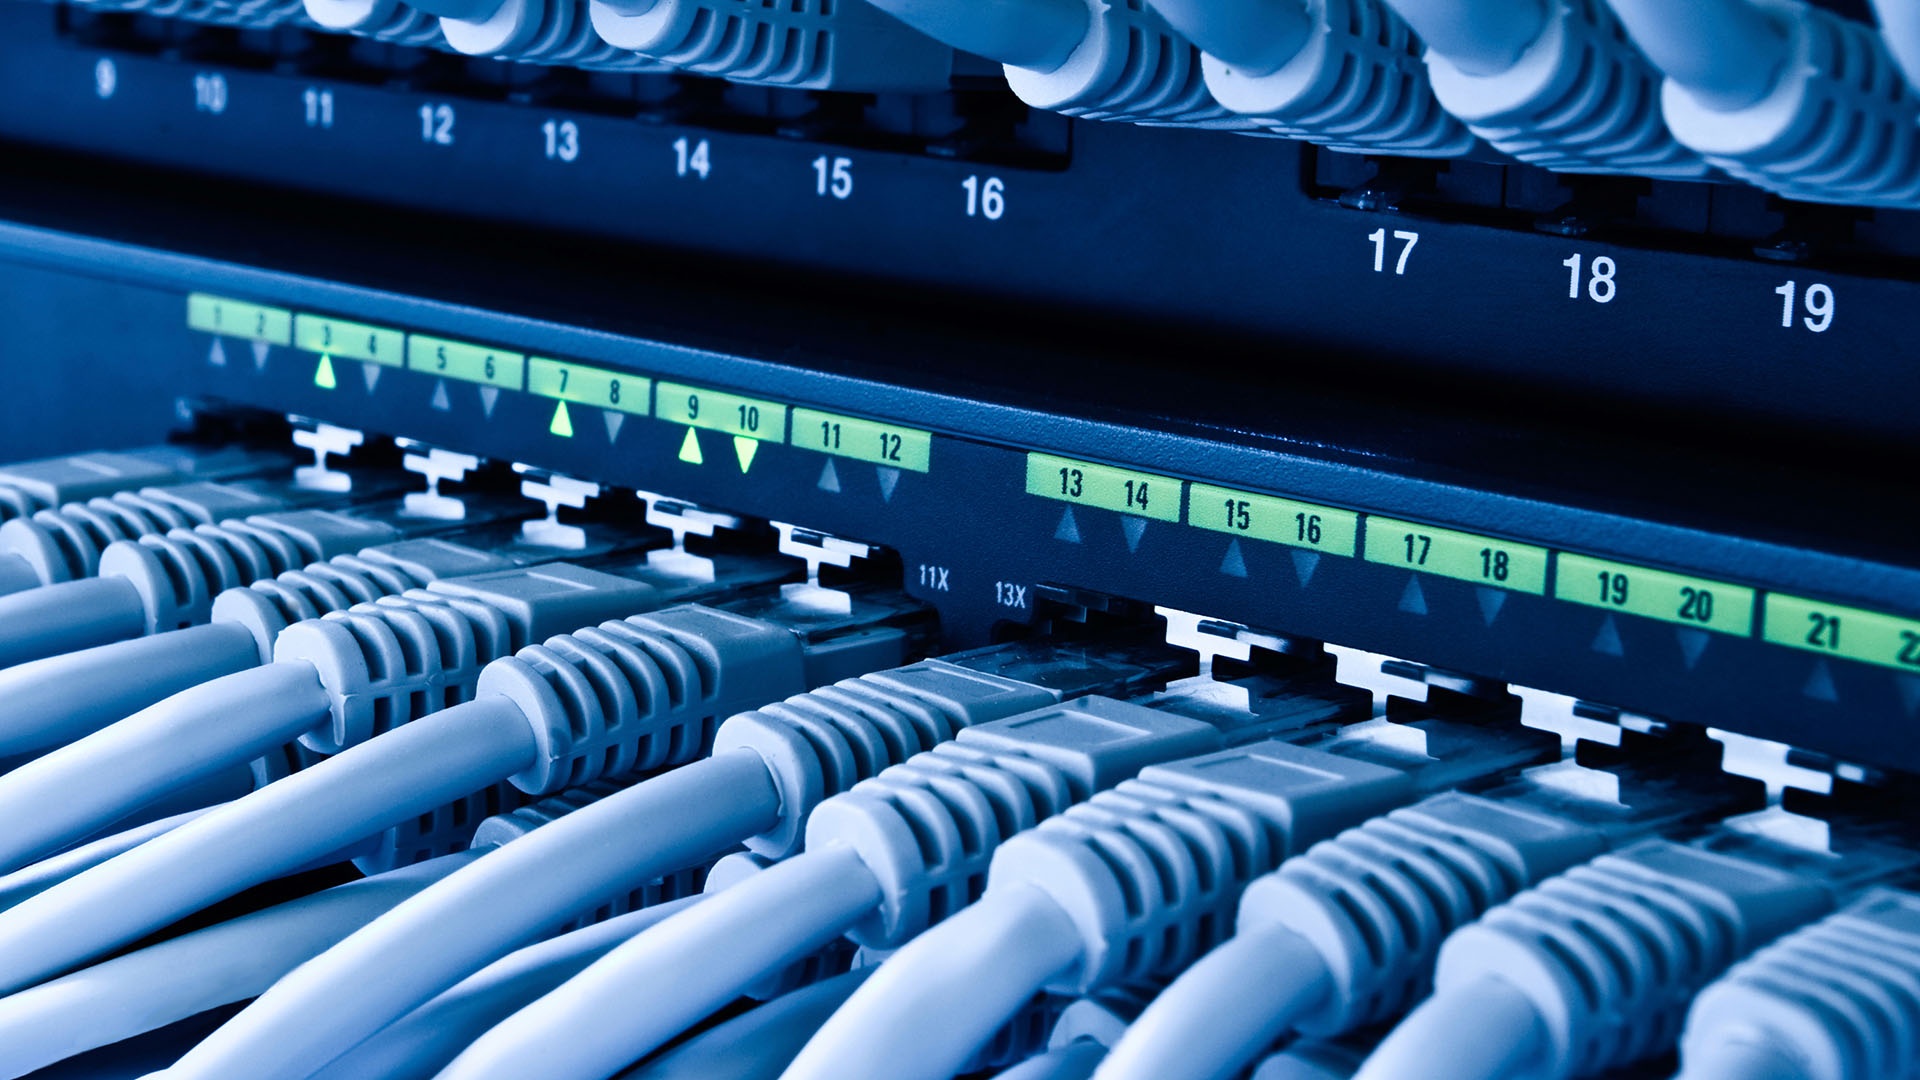 Fort Mitchell Kentucky Premier Voice & Data Network Cabling Services